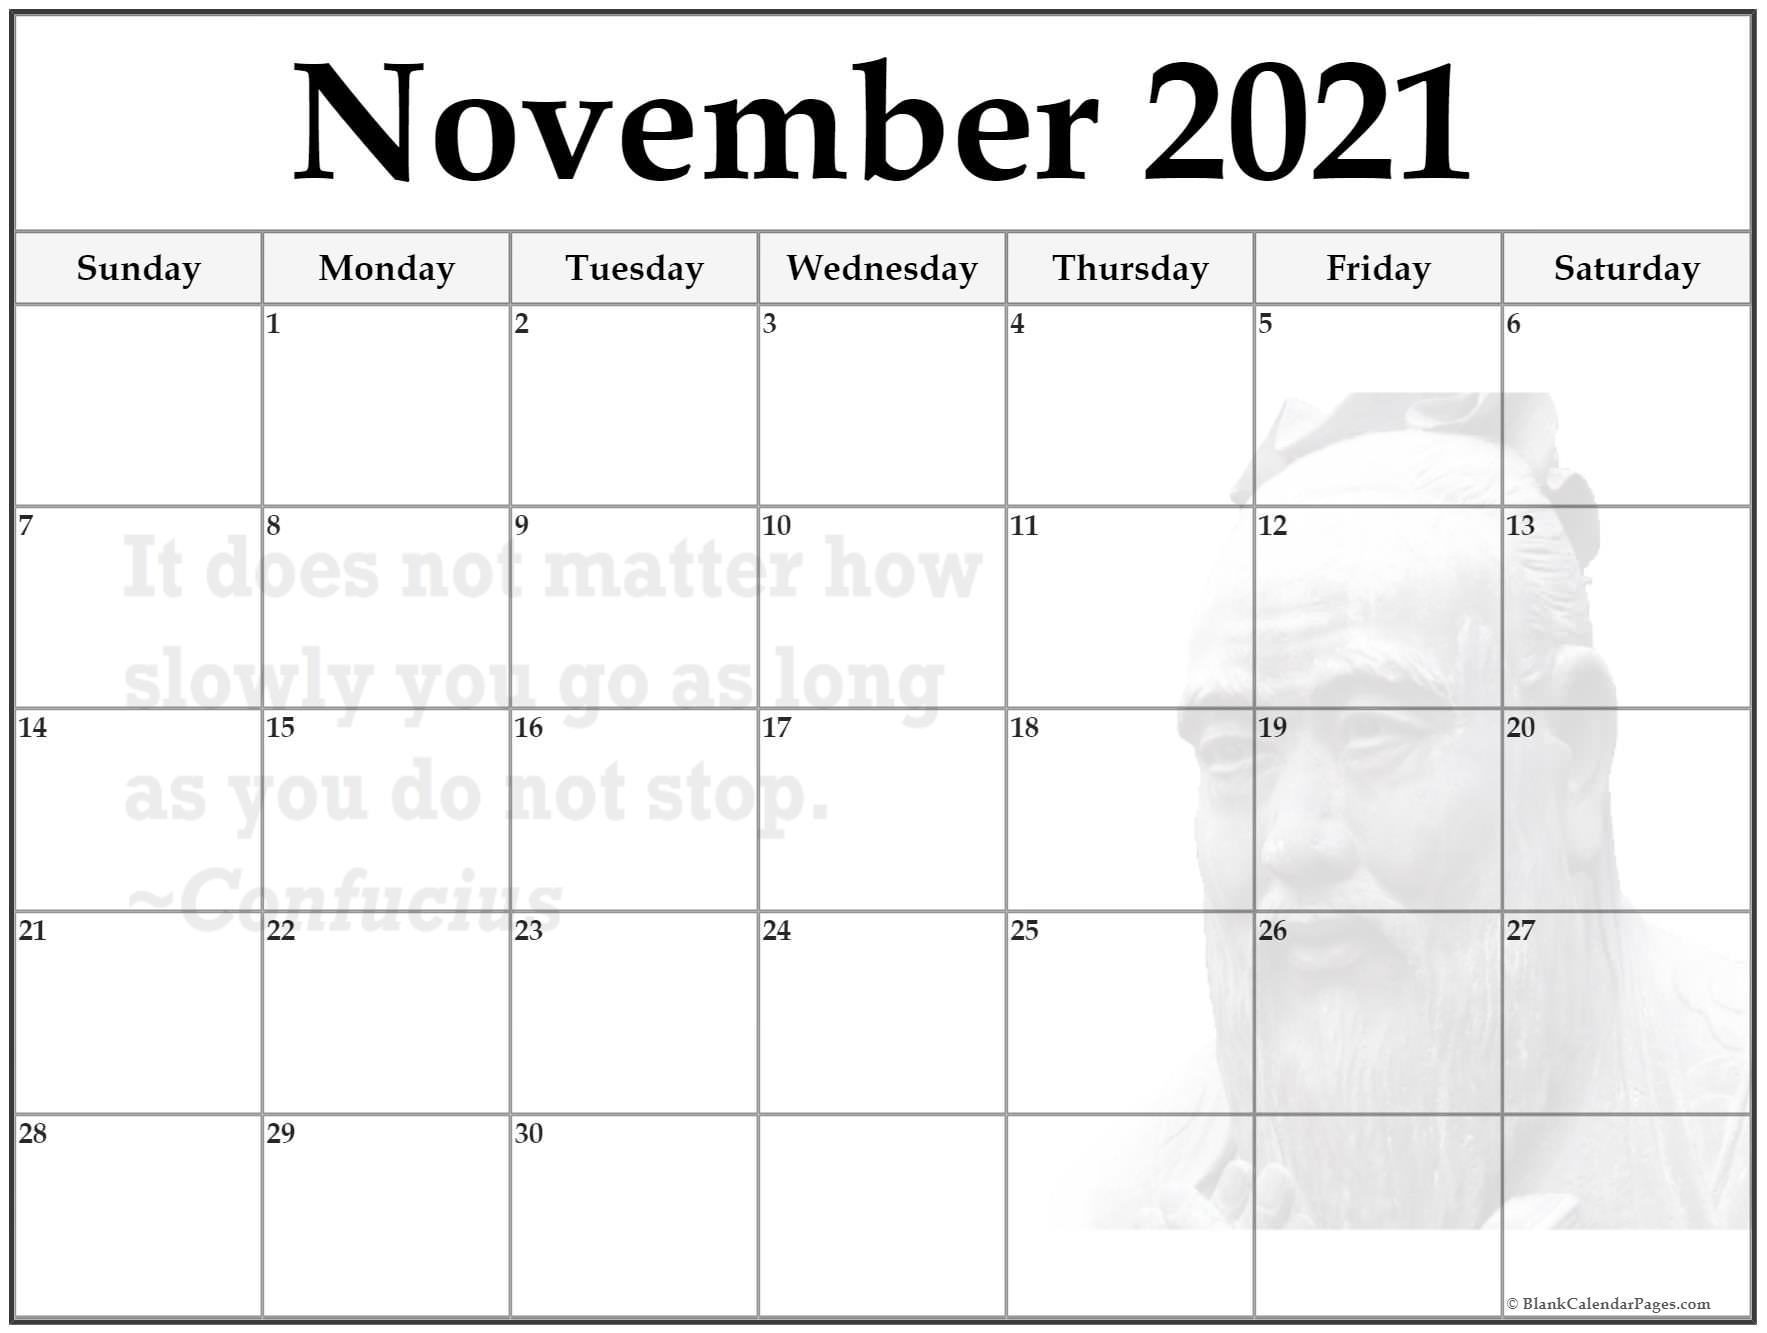 November 2019 monthly calendar template. It does not matter how slowly you go as long as you don't stop ~Confucius